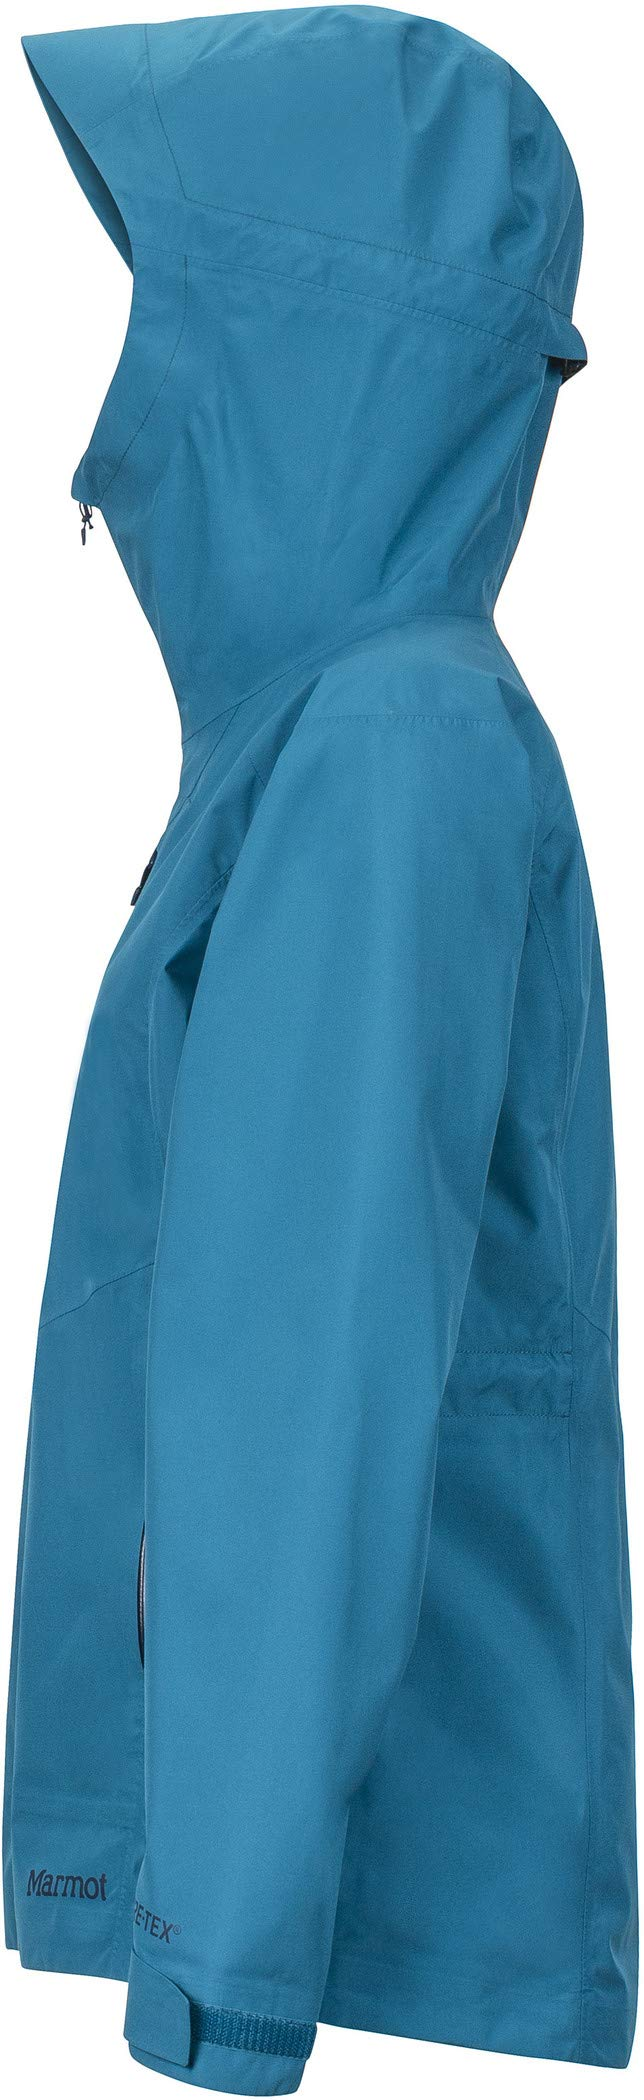 71Kd6zjZtML - Marmot Women's Wm's Knife Edge Hardshell Rain Jacket, Raincoat, Windproof, Waterproof, Breathable